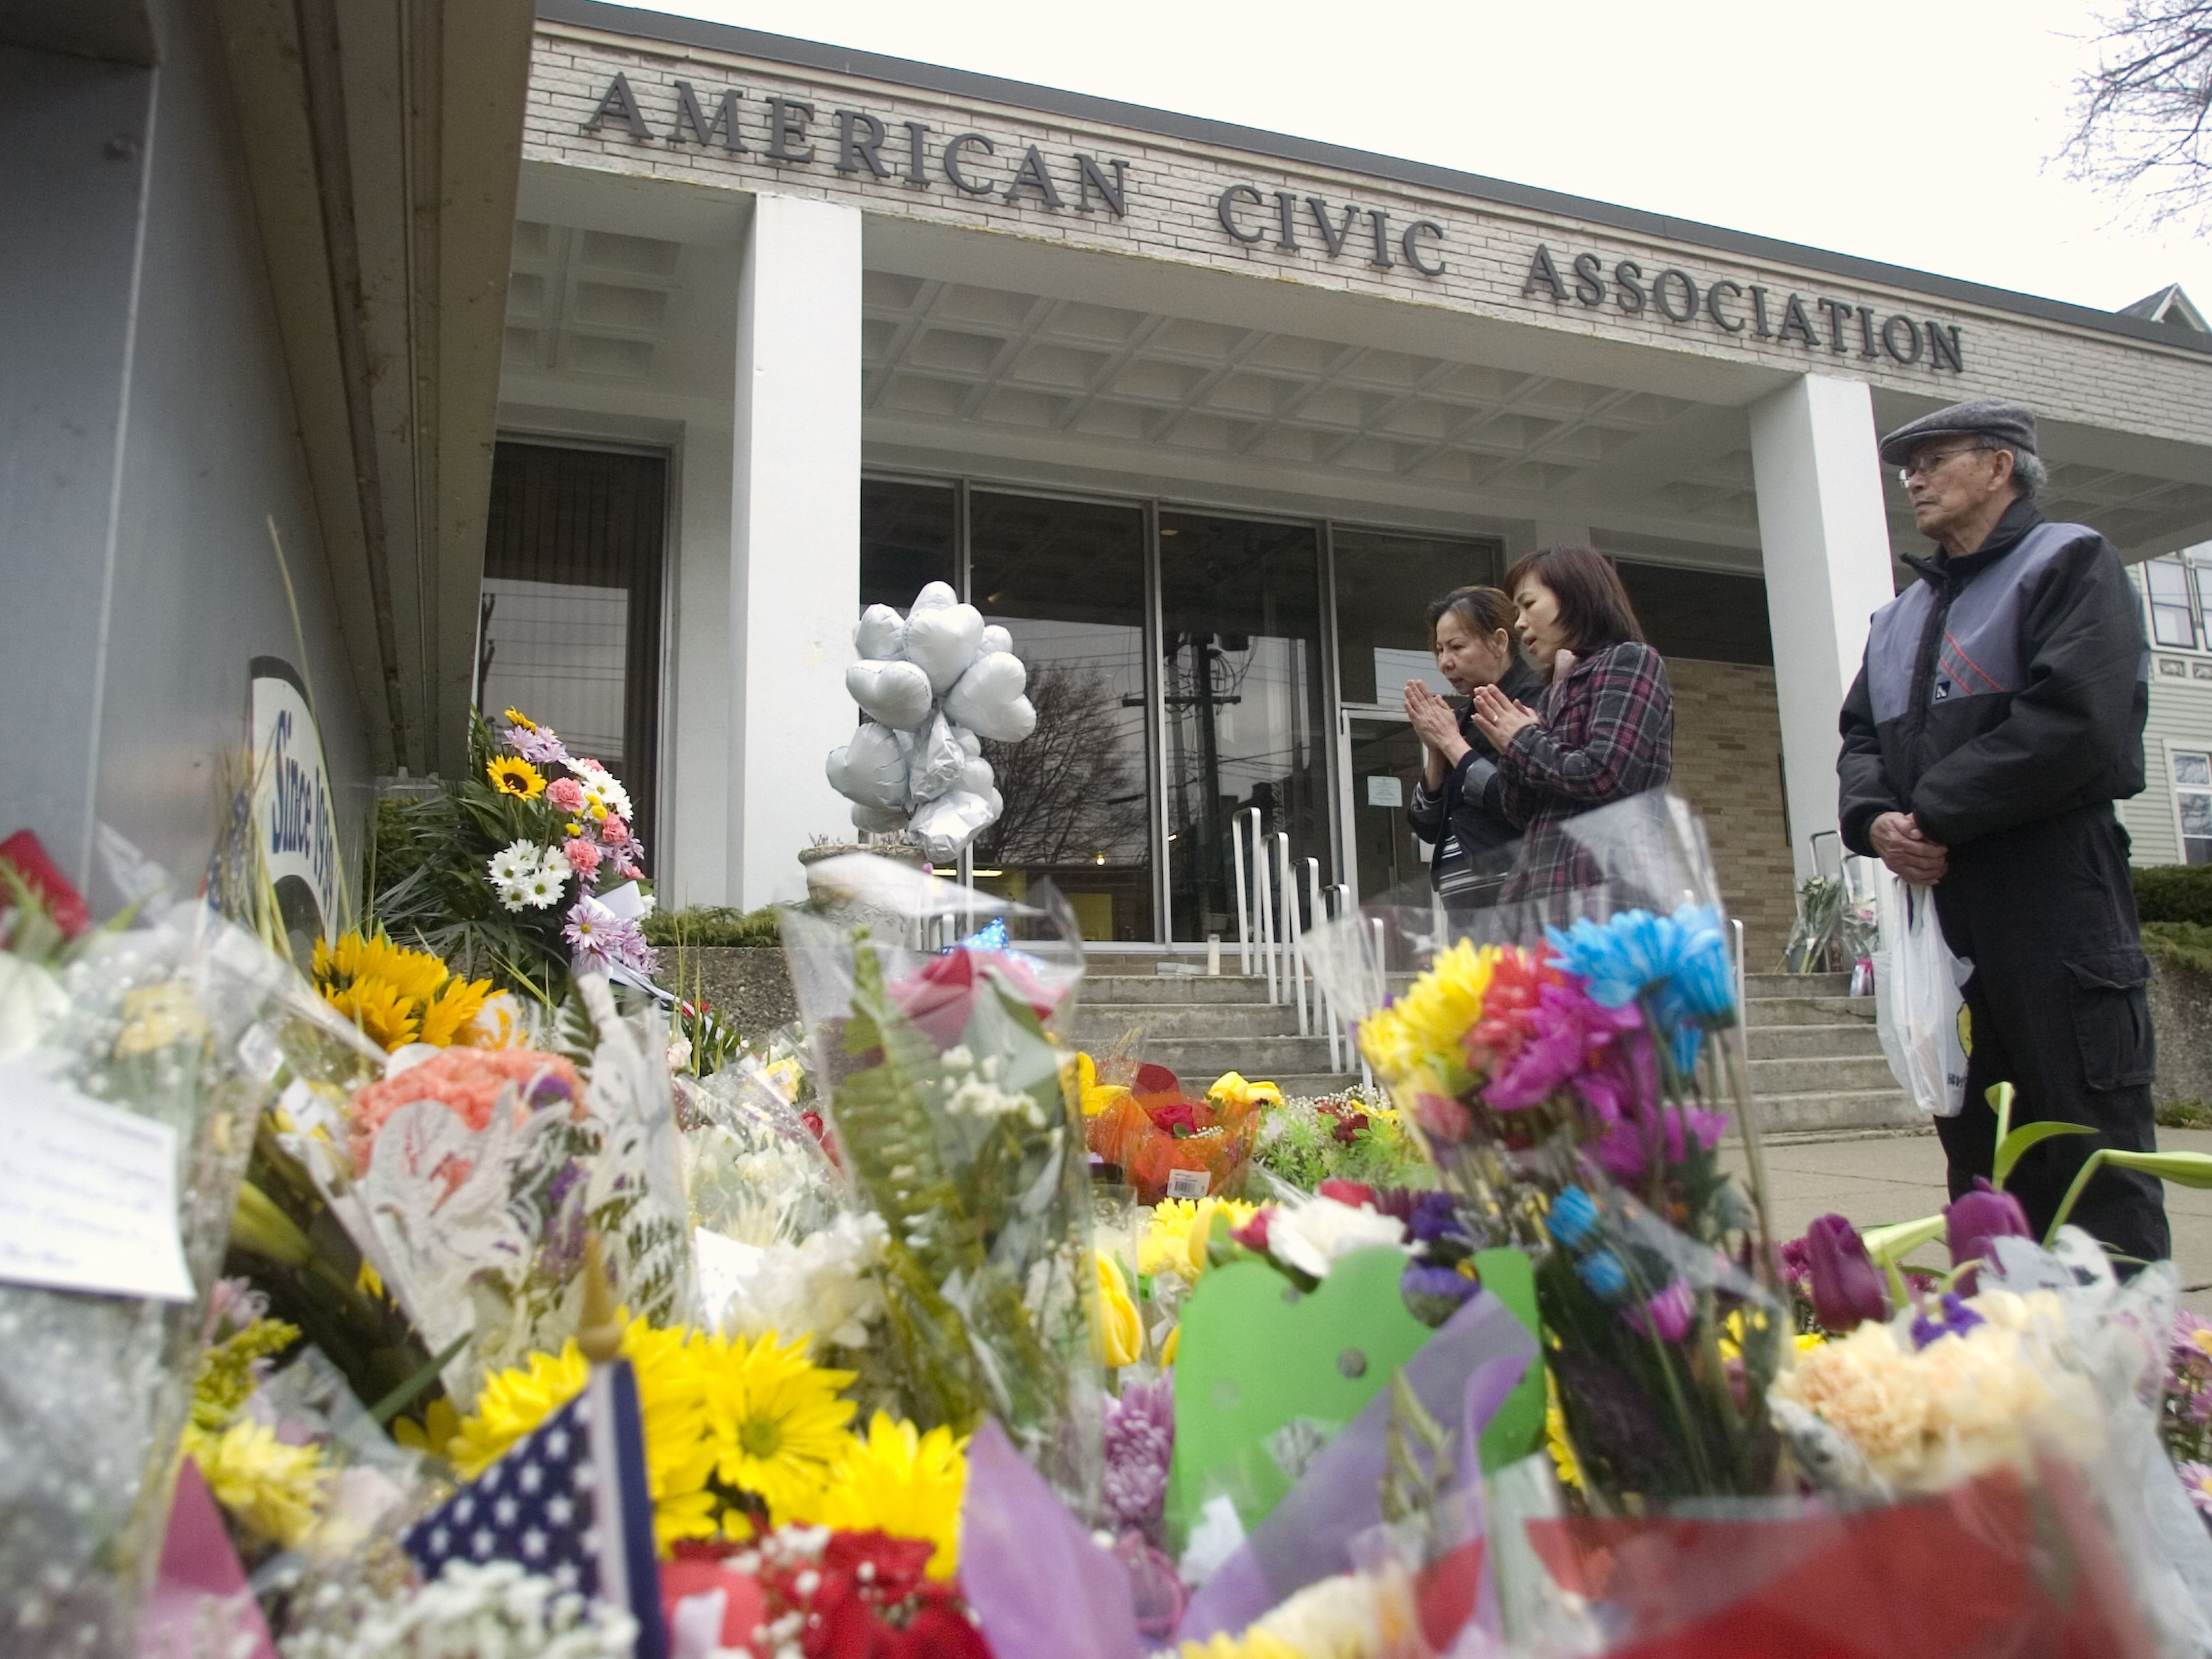 American Civic Association   Binghamton, New York   April 3, 2009   14 dead   4 wounded